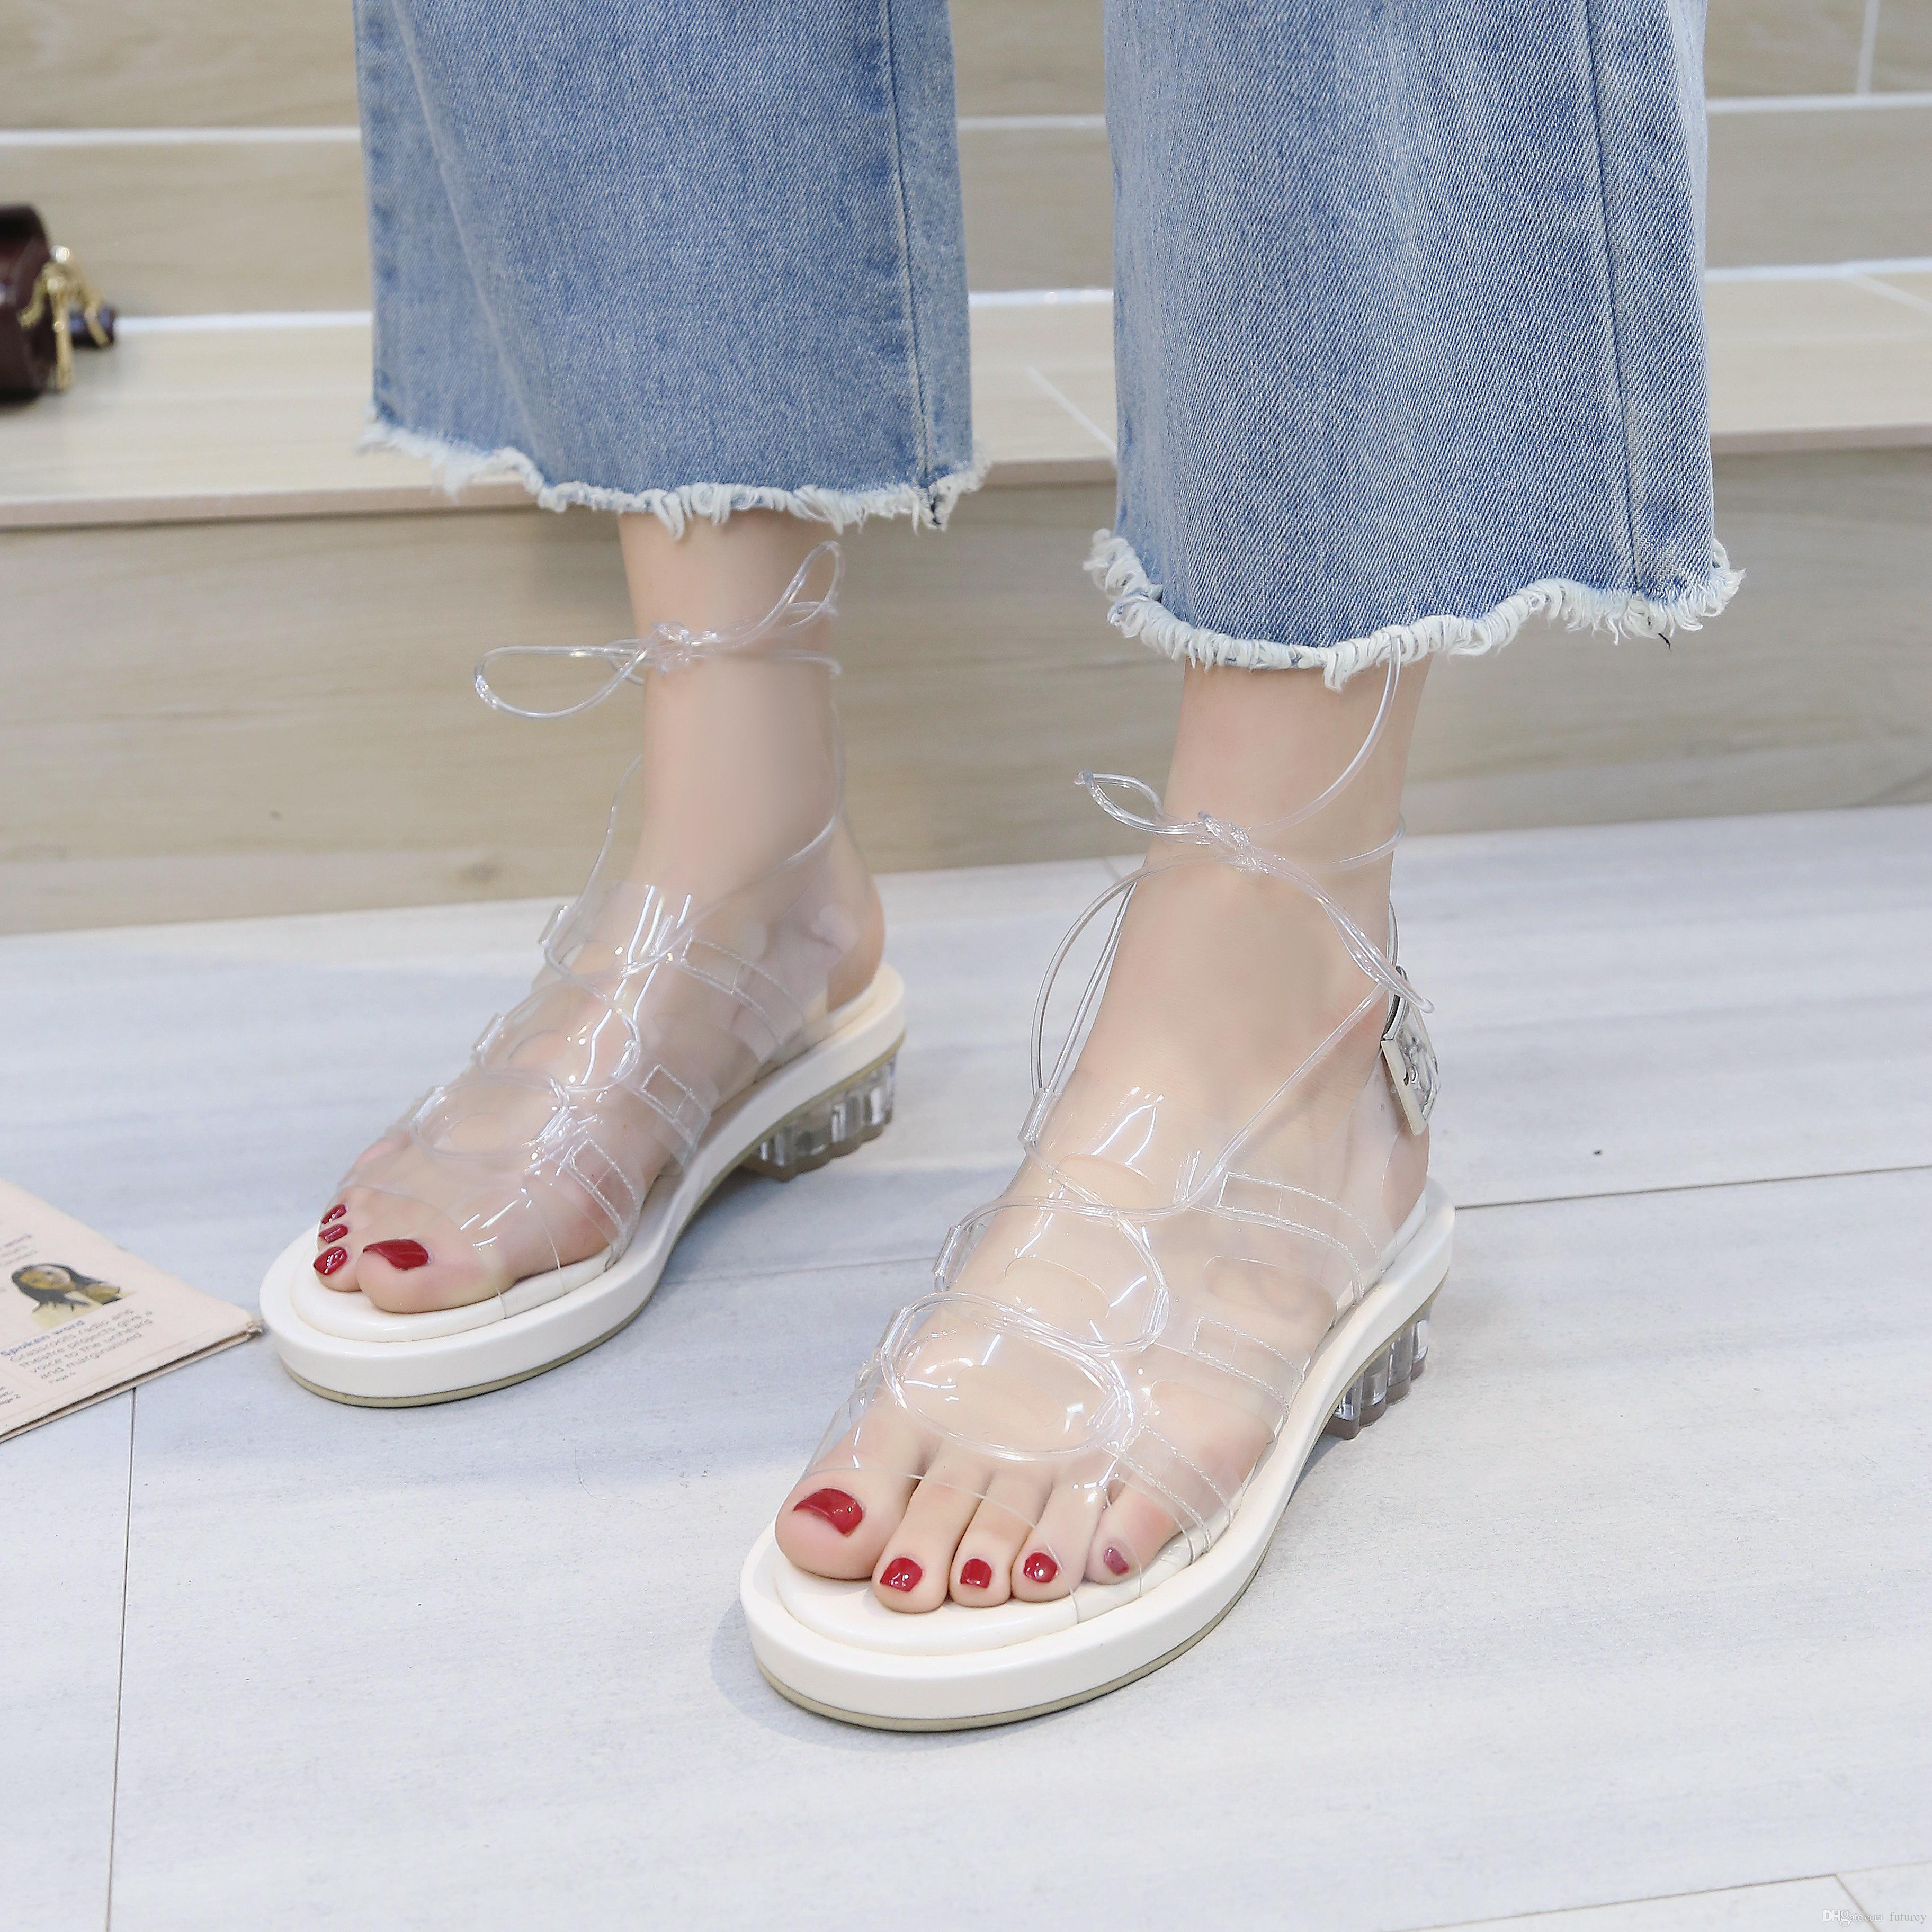 e081c4273bf1 Women S Low Heel Sandals Gladiator Summer Transparent Open Toe Jelly Shoes  Ladies Retro Roman Lace Strap Beach Sandals K0116 White Sandals Wedge Heels  From ...